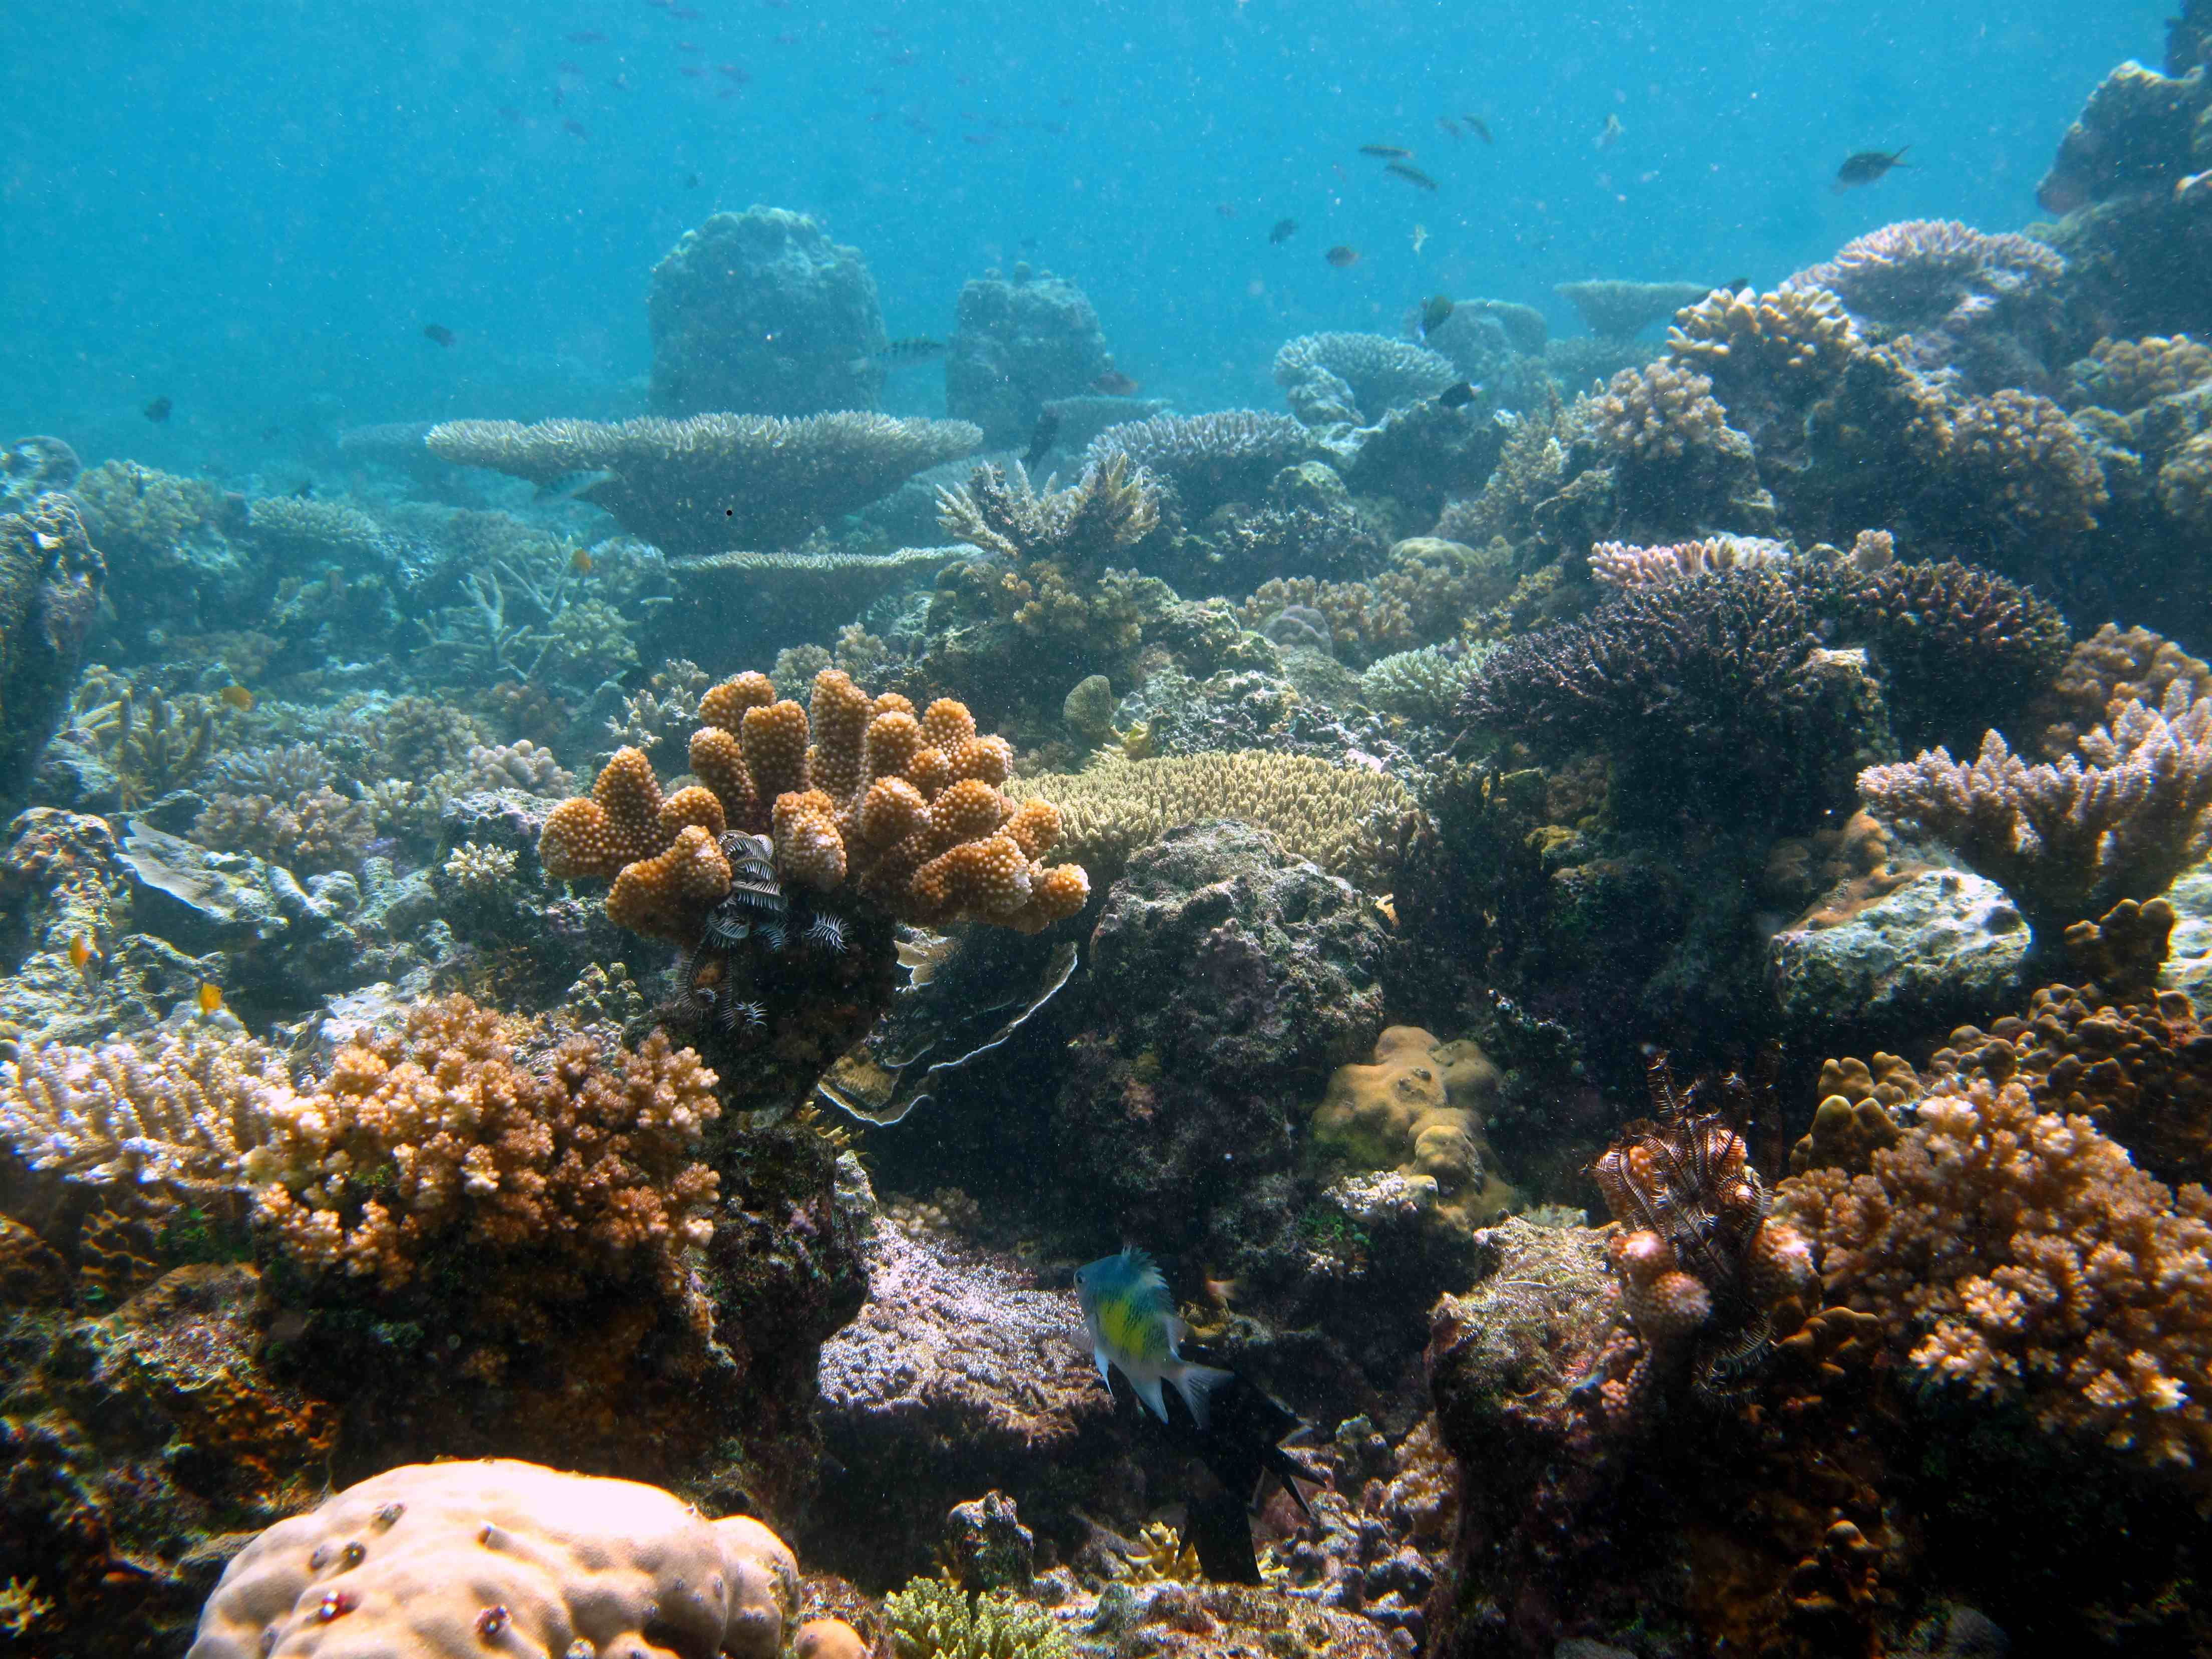 A healthy coral reef far away from CO2 seeps where the pH is still unaffected<div class='credit'><strong>Credit:</strong> A healthy coral reef far away from CO2 seeps where the pH is still unaffected</div>